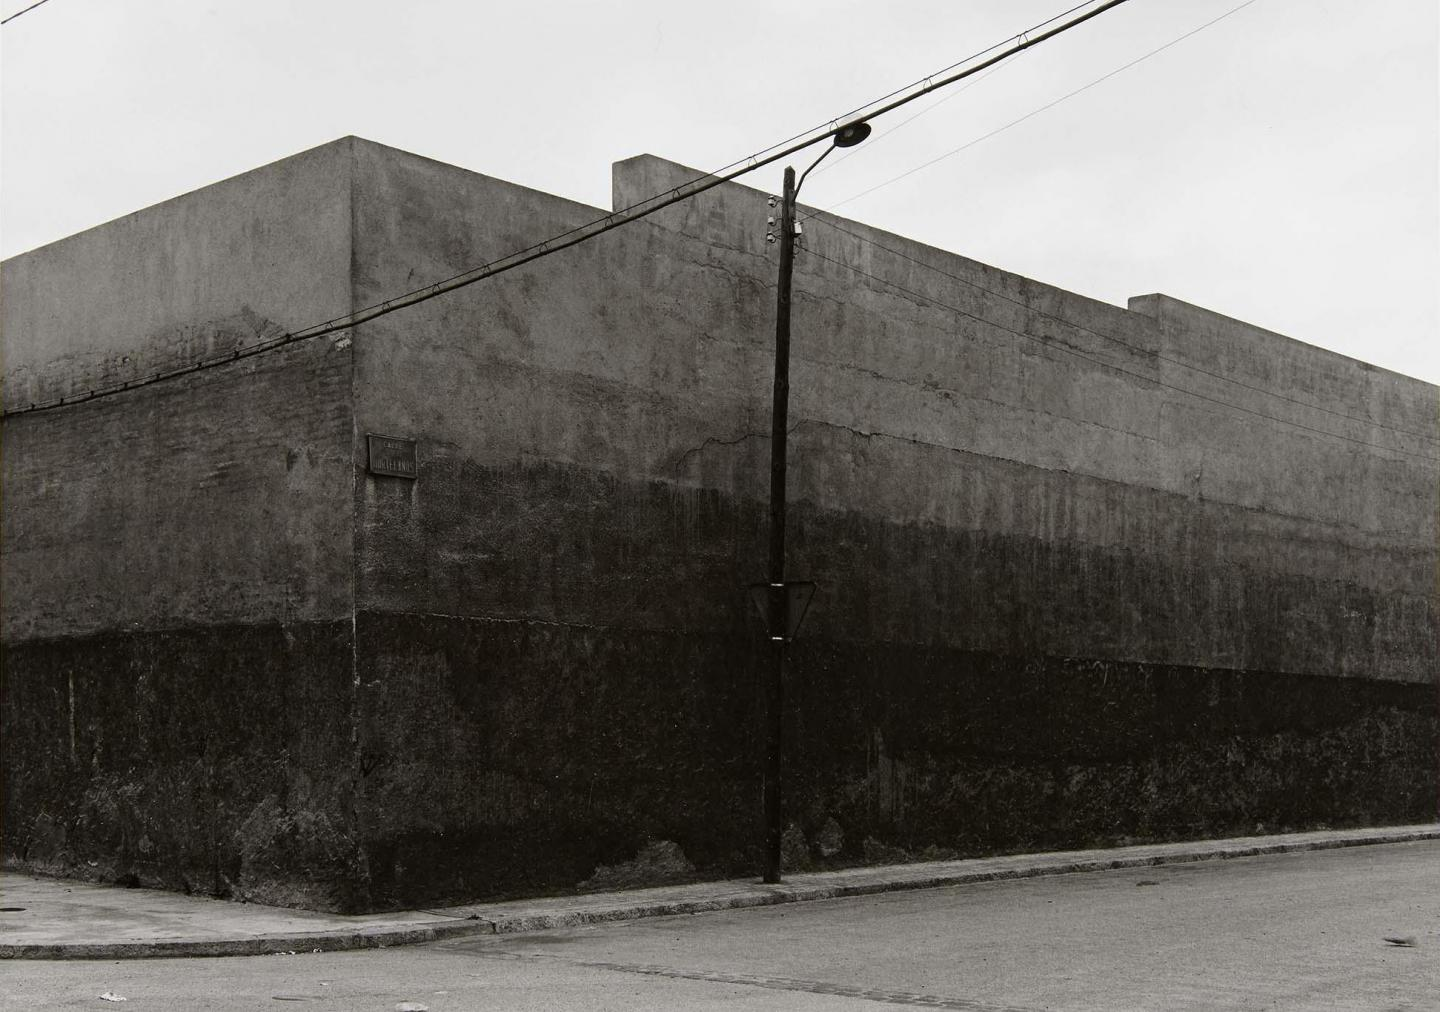 Block-shaped concrete building, utility pole, and wires.